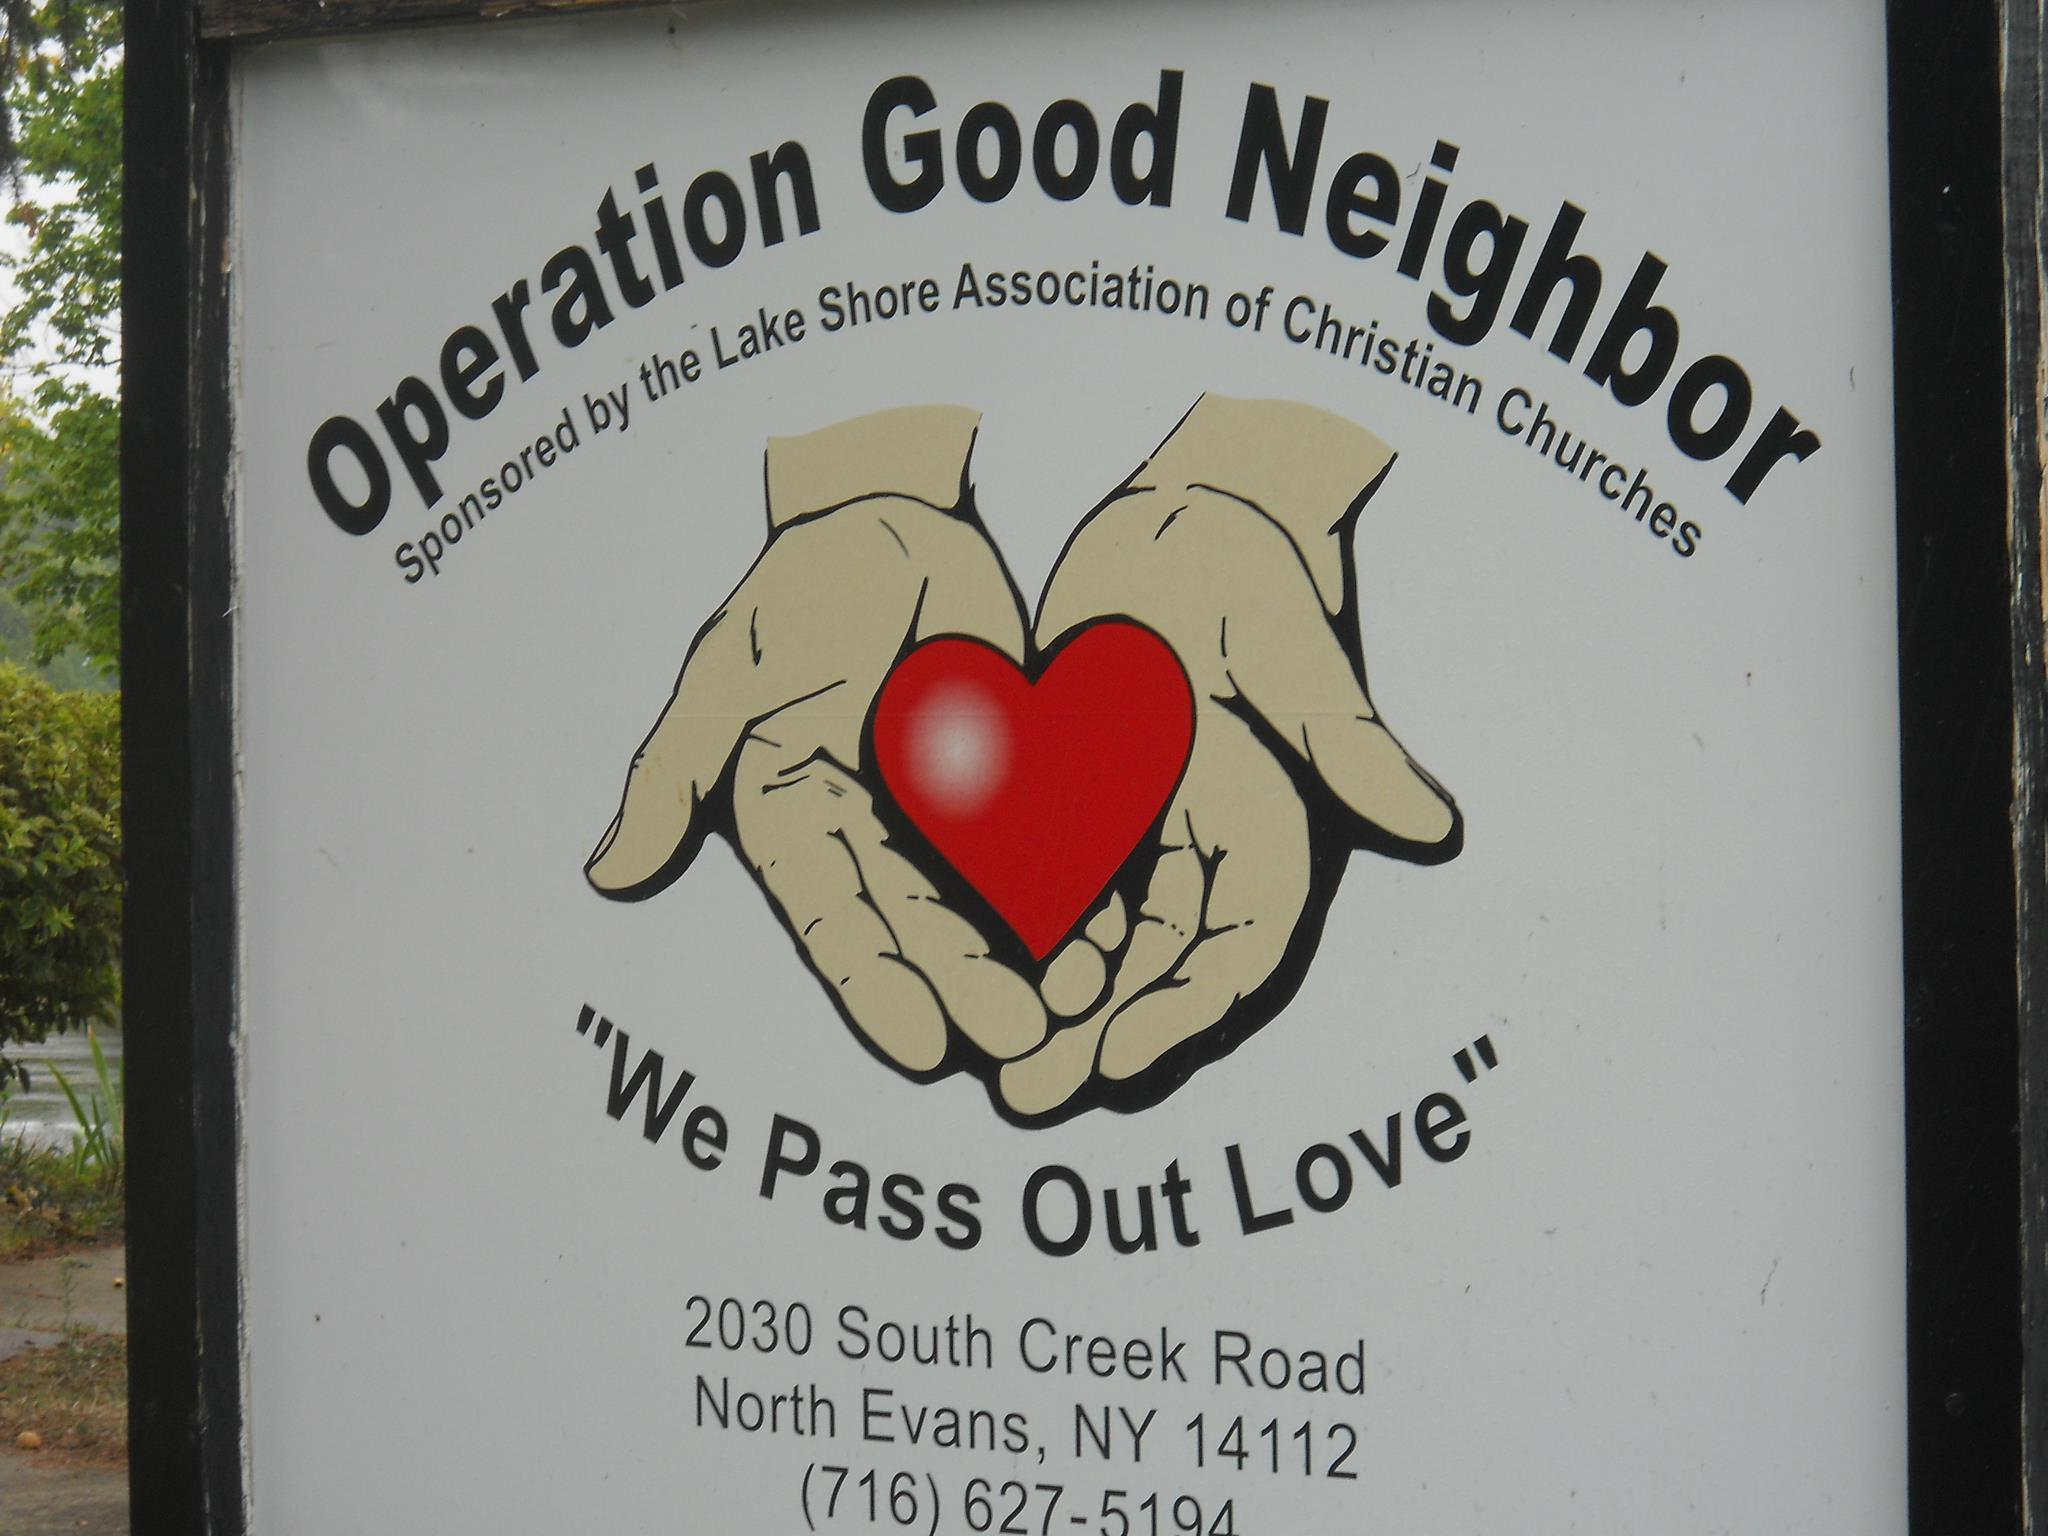 Operation Good Neighbor Food Pantry